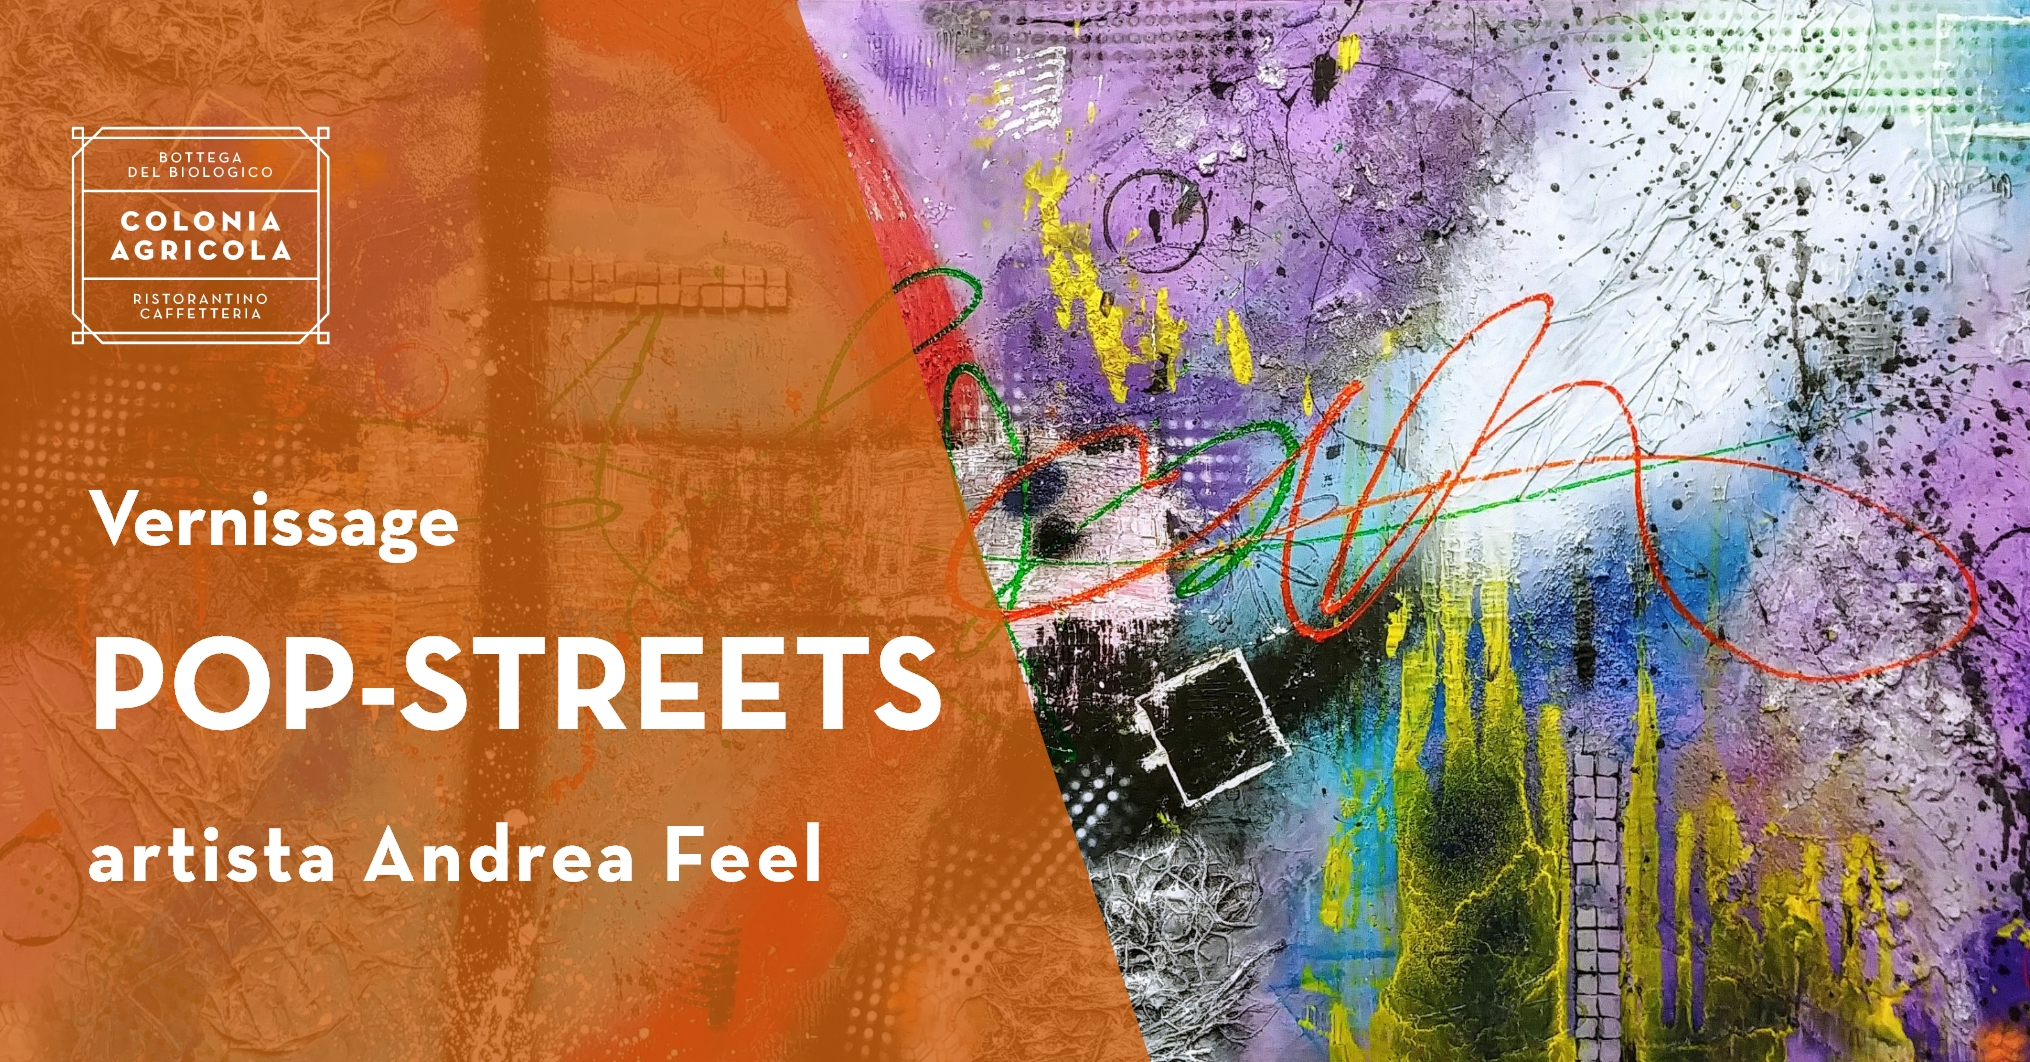 vernissage Pop-streets